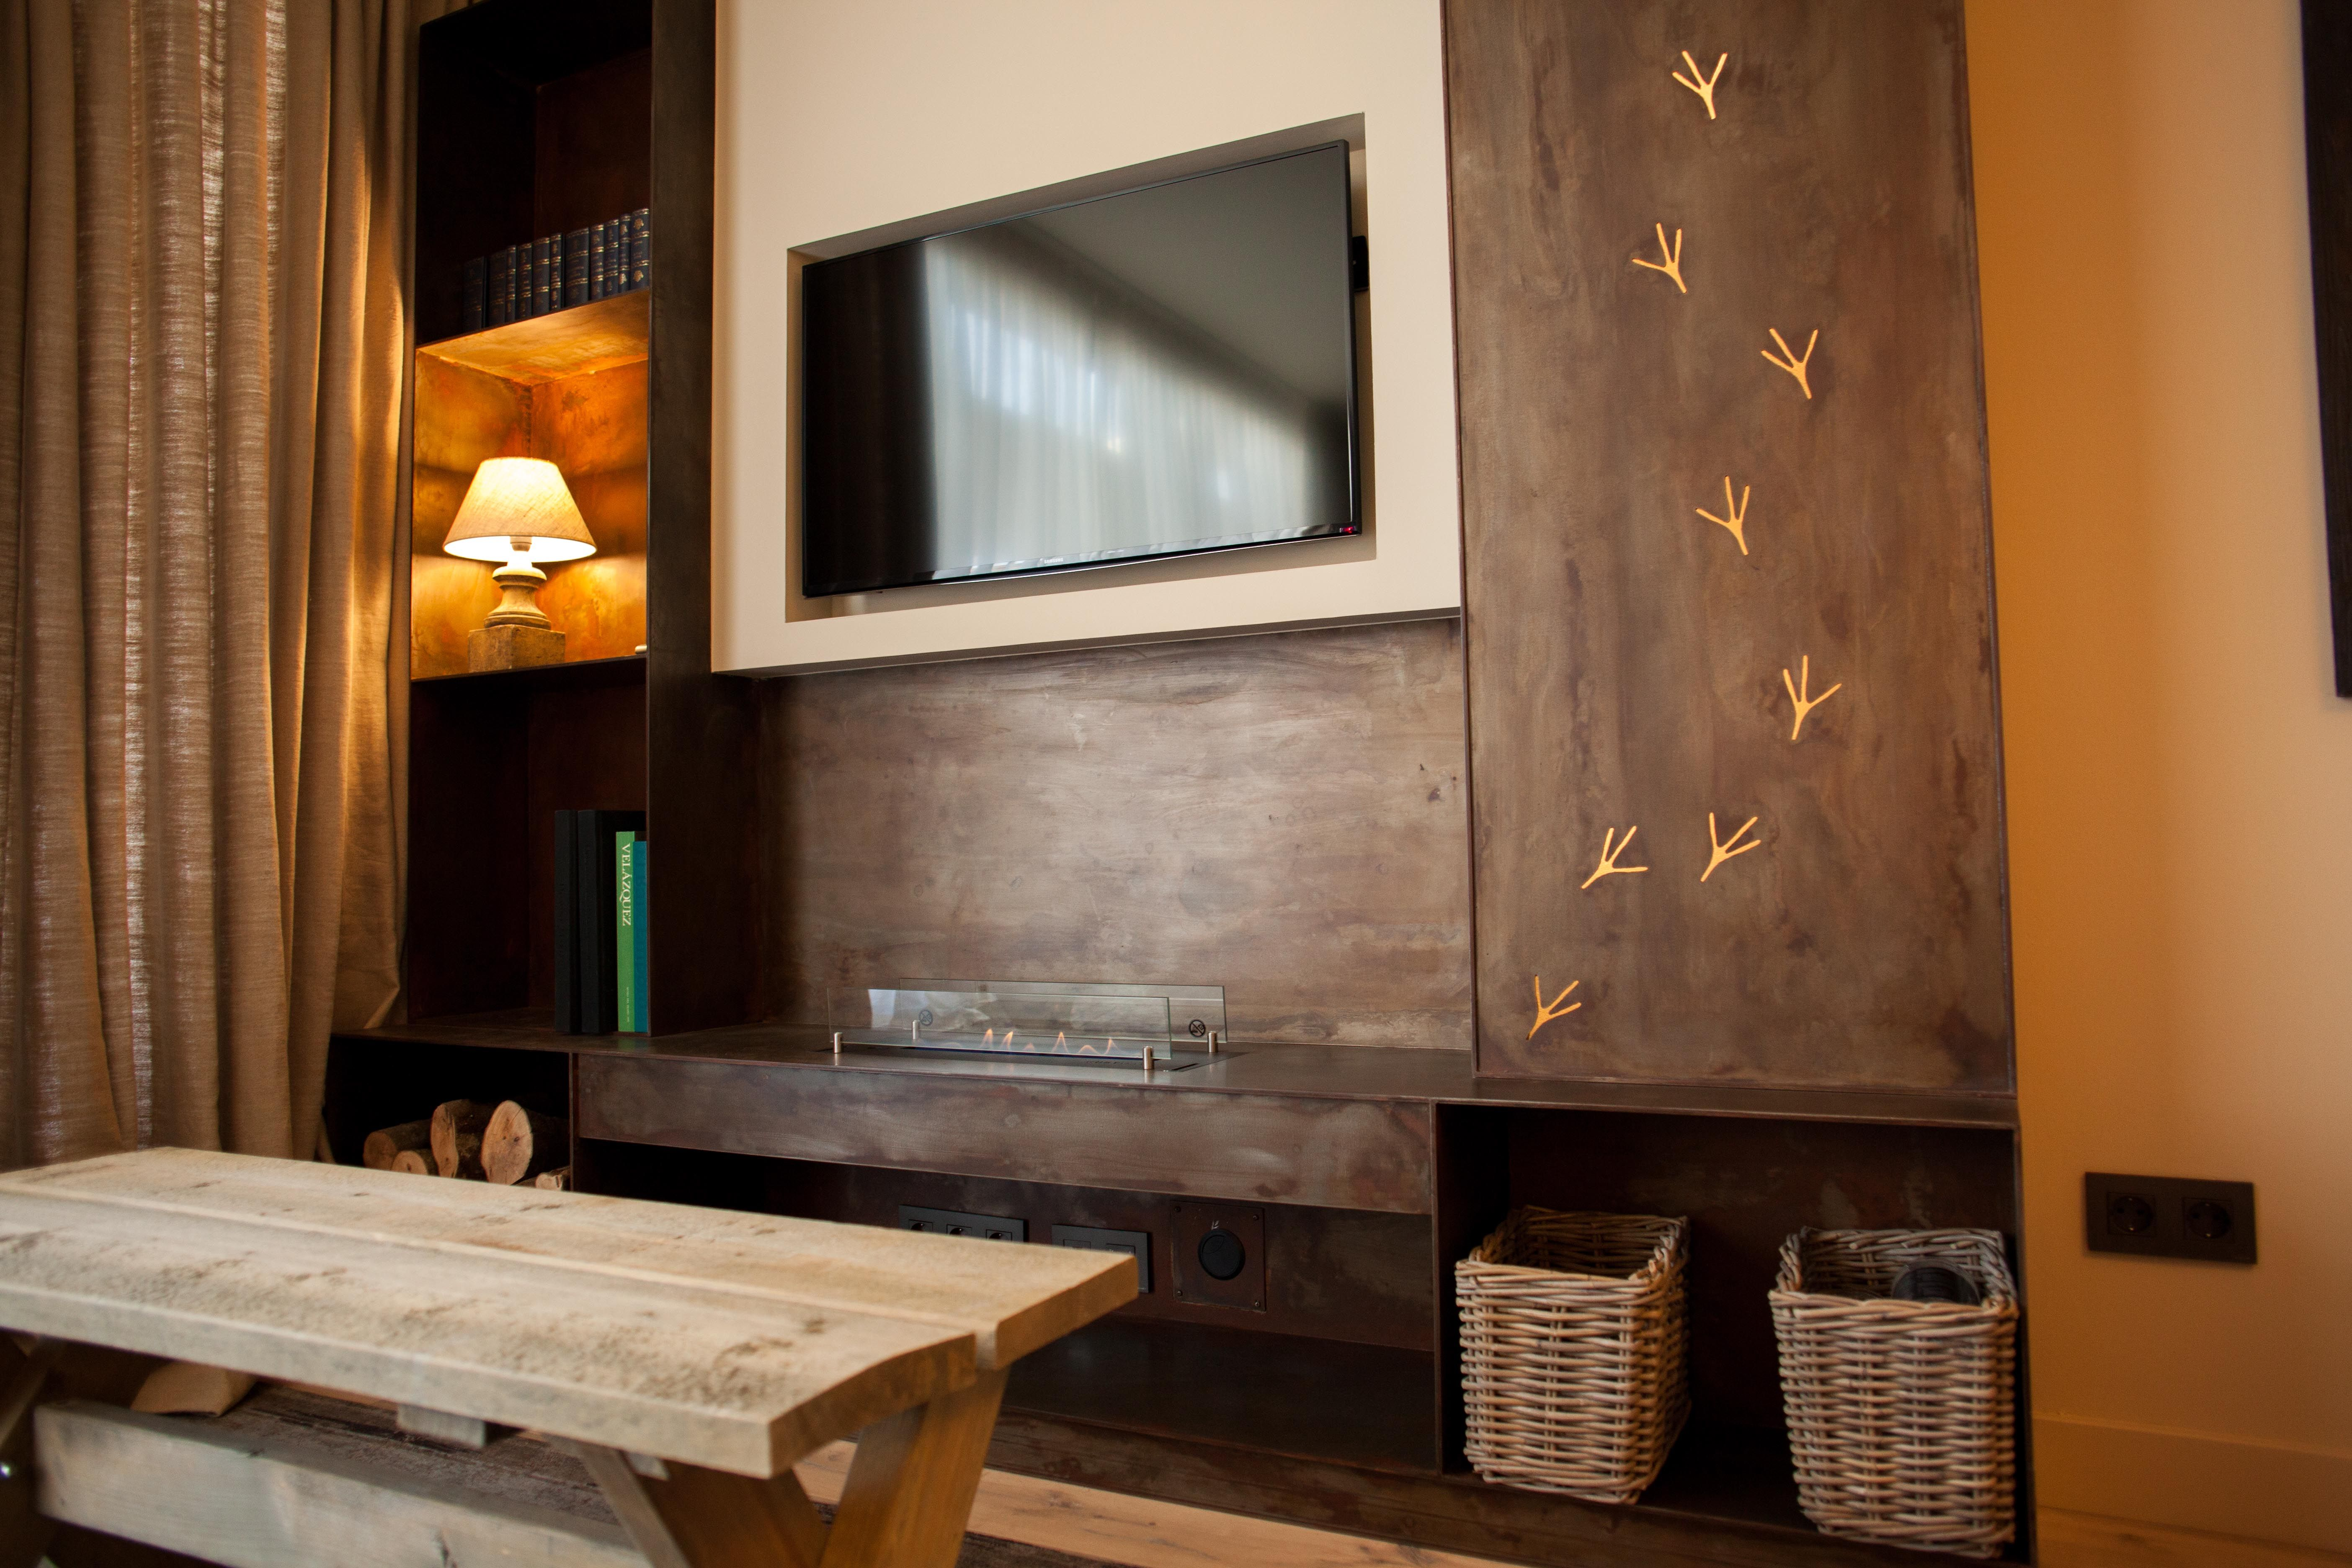 Corten Steel Wall Unit With Ecological Fireplace Design By Lory